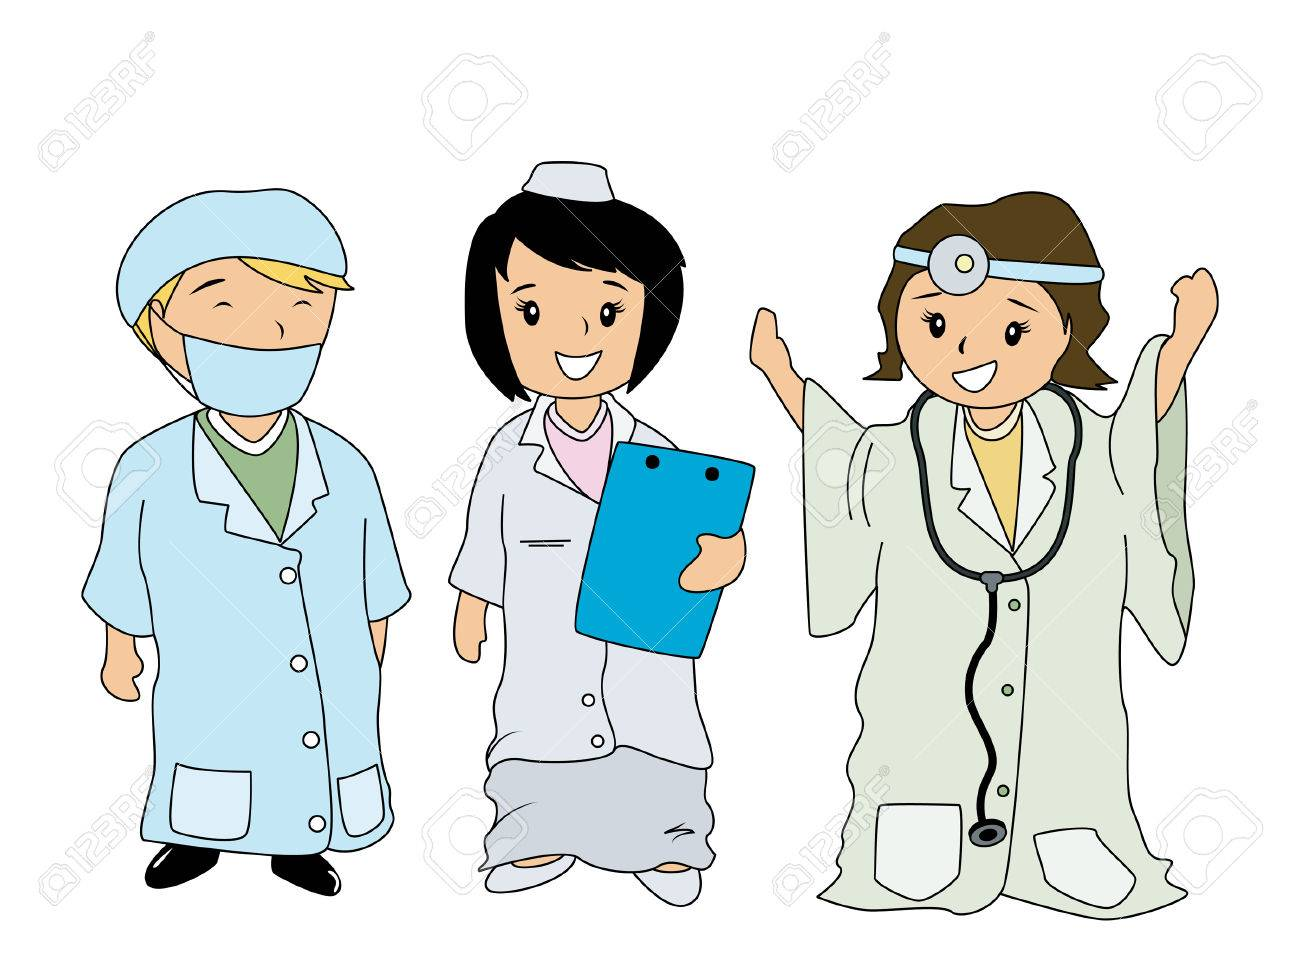 Children In Medical Costumes Royalty Free Cliparts, Vectors, And ...